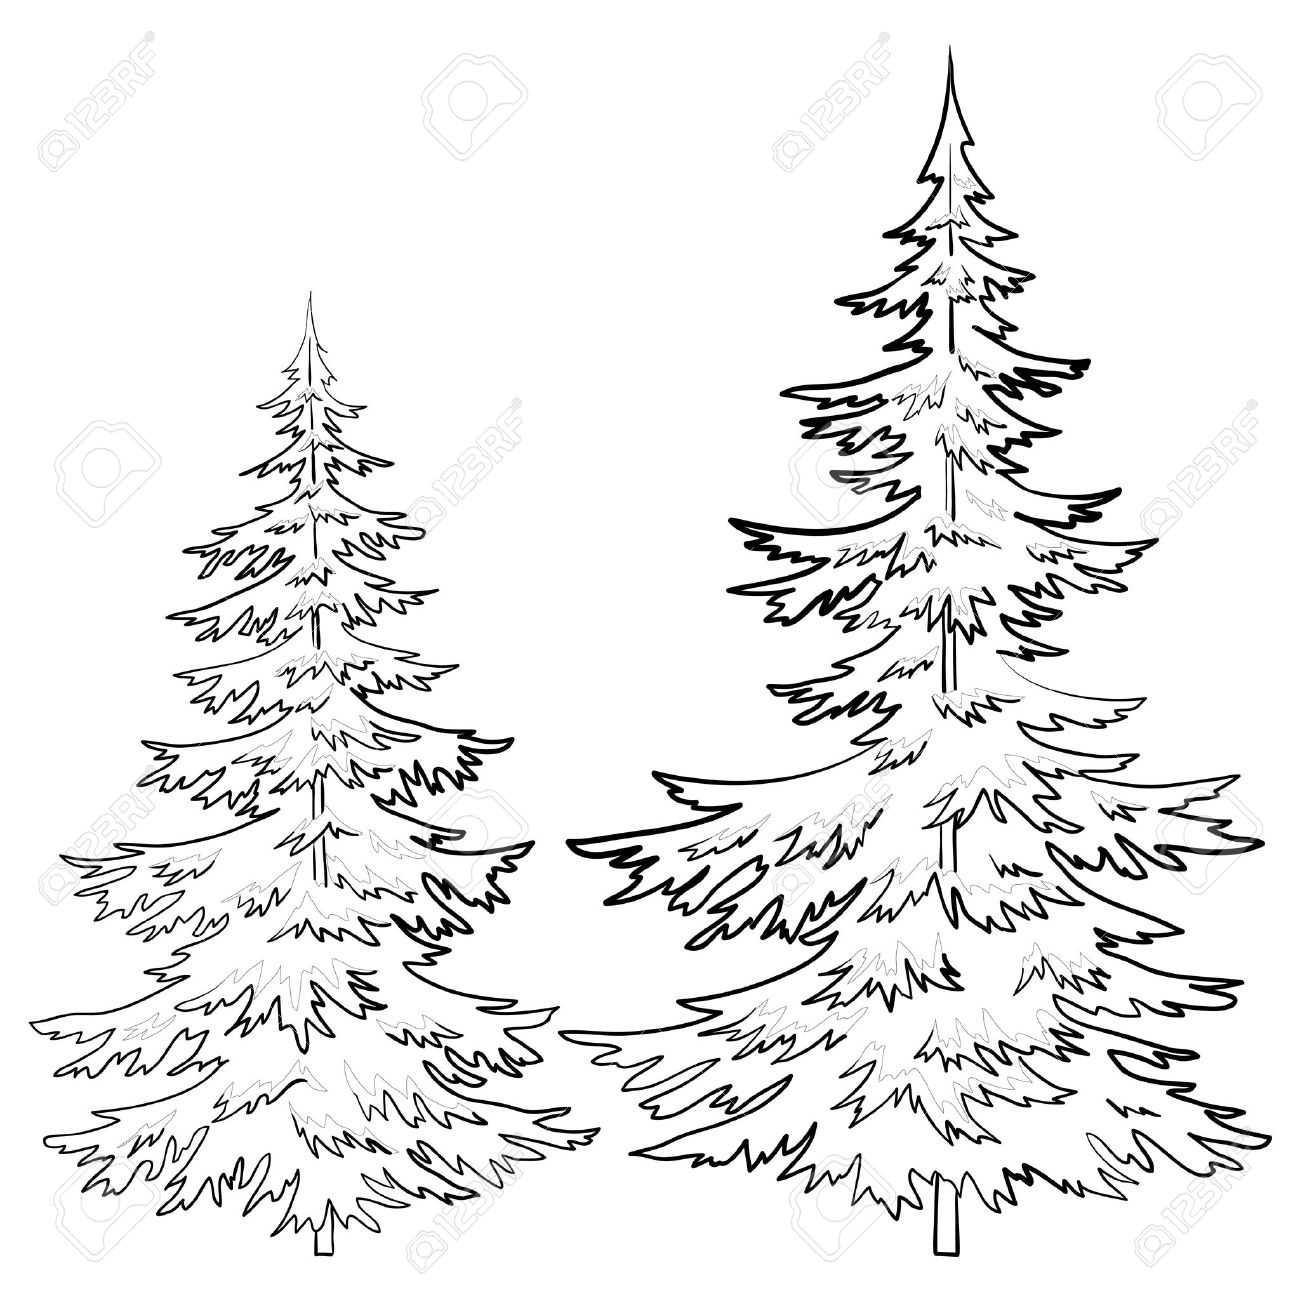 how to draw realistic pine trees how to draw realistic pine trees step by step arcmelcom to how realistic trees pine draw